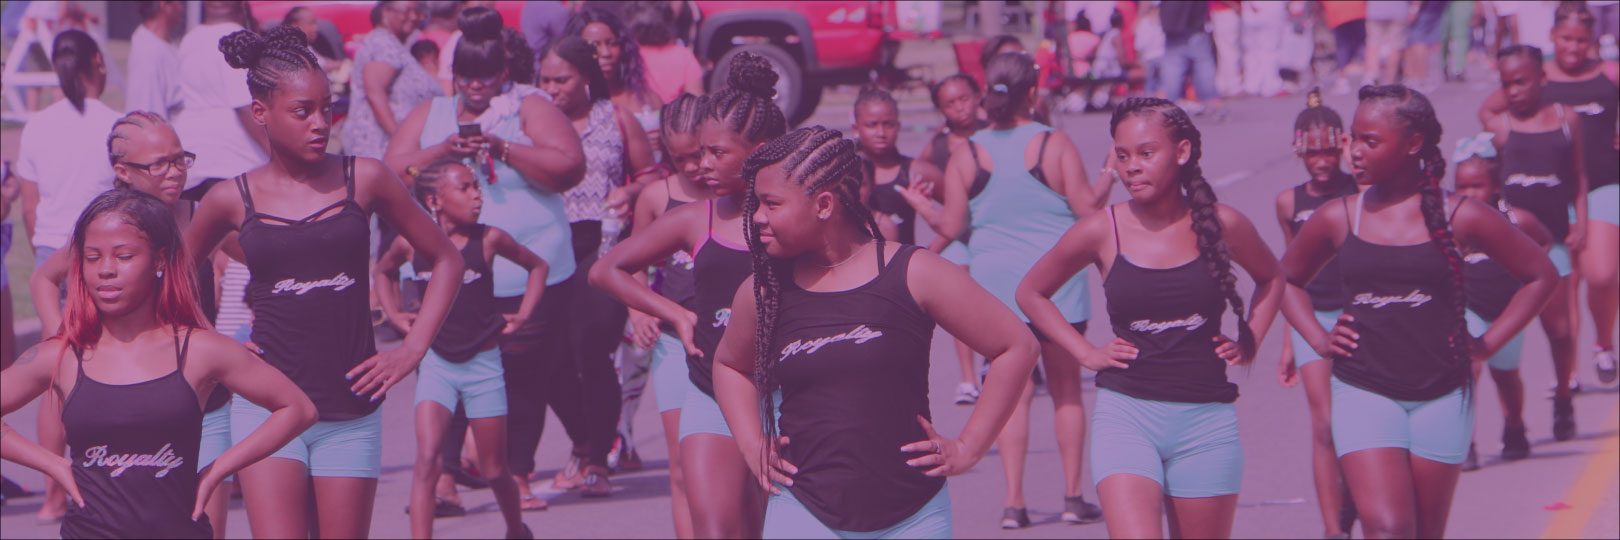 2018 Toledo African American Parade held July 14, 2018